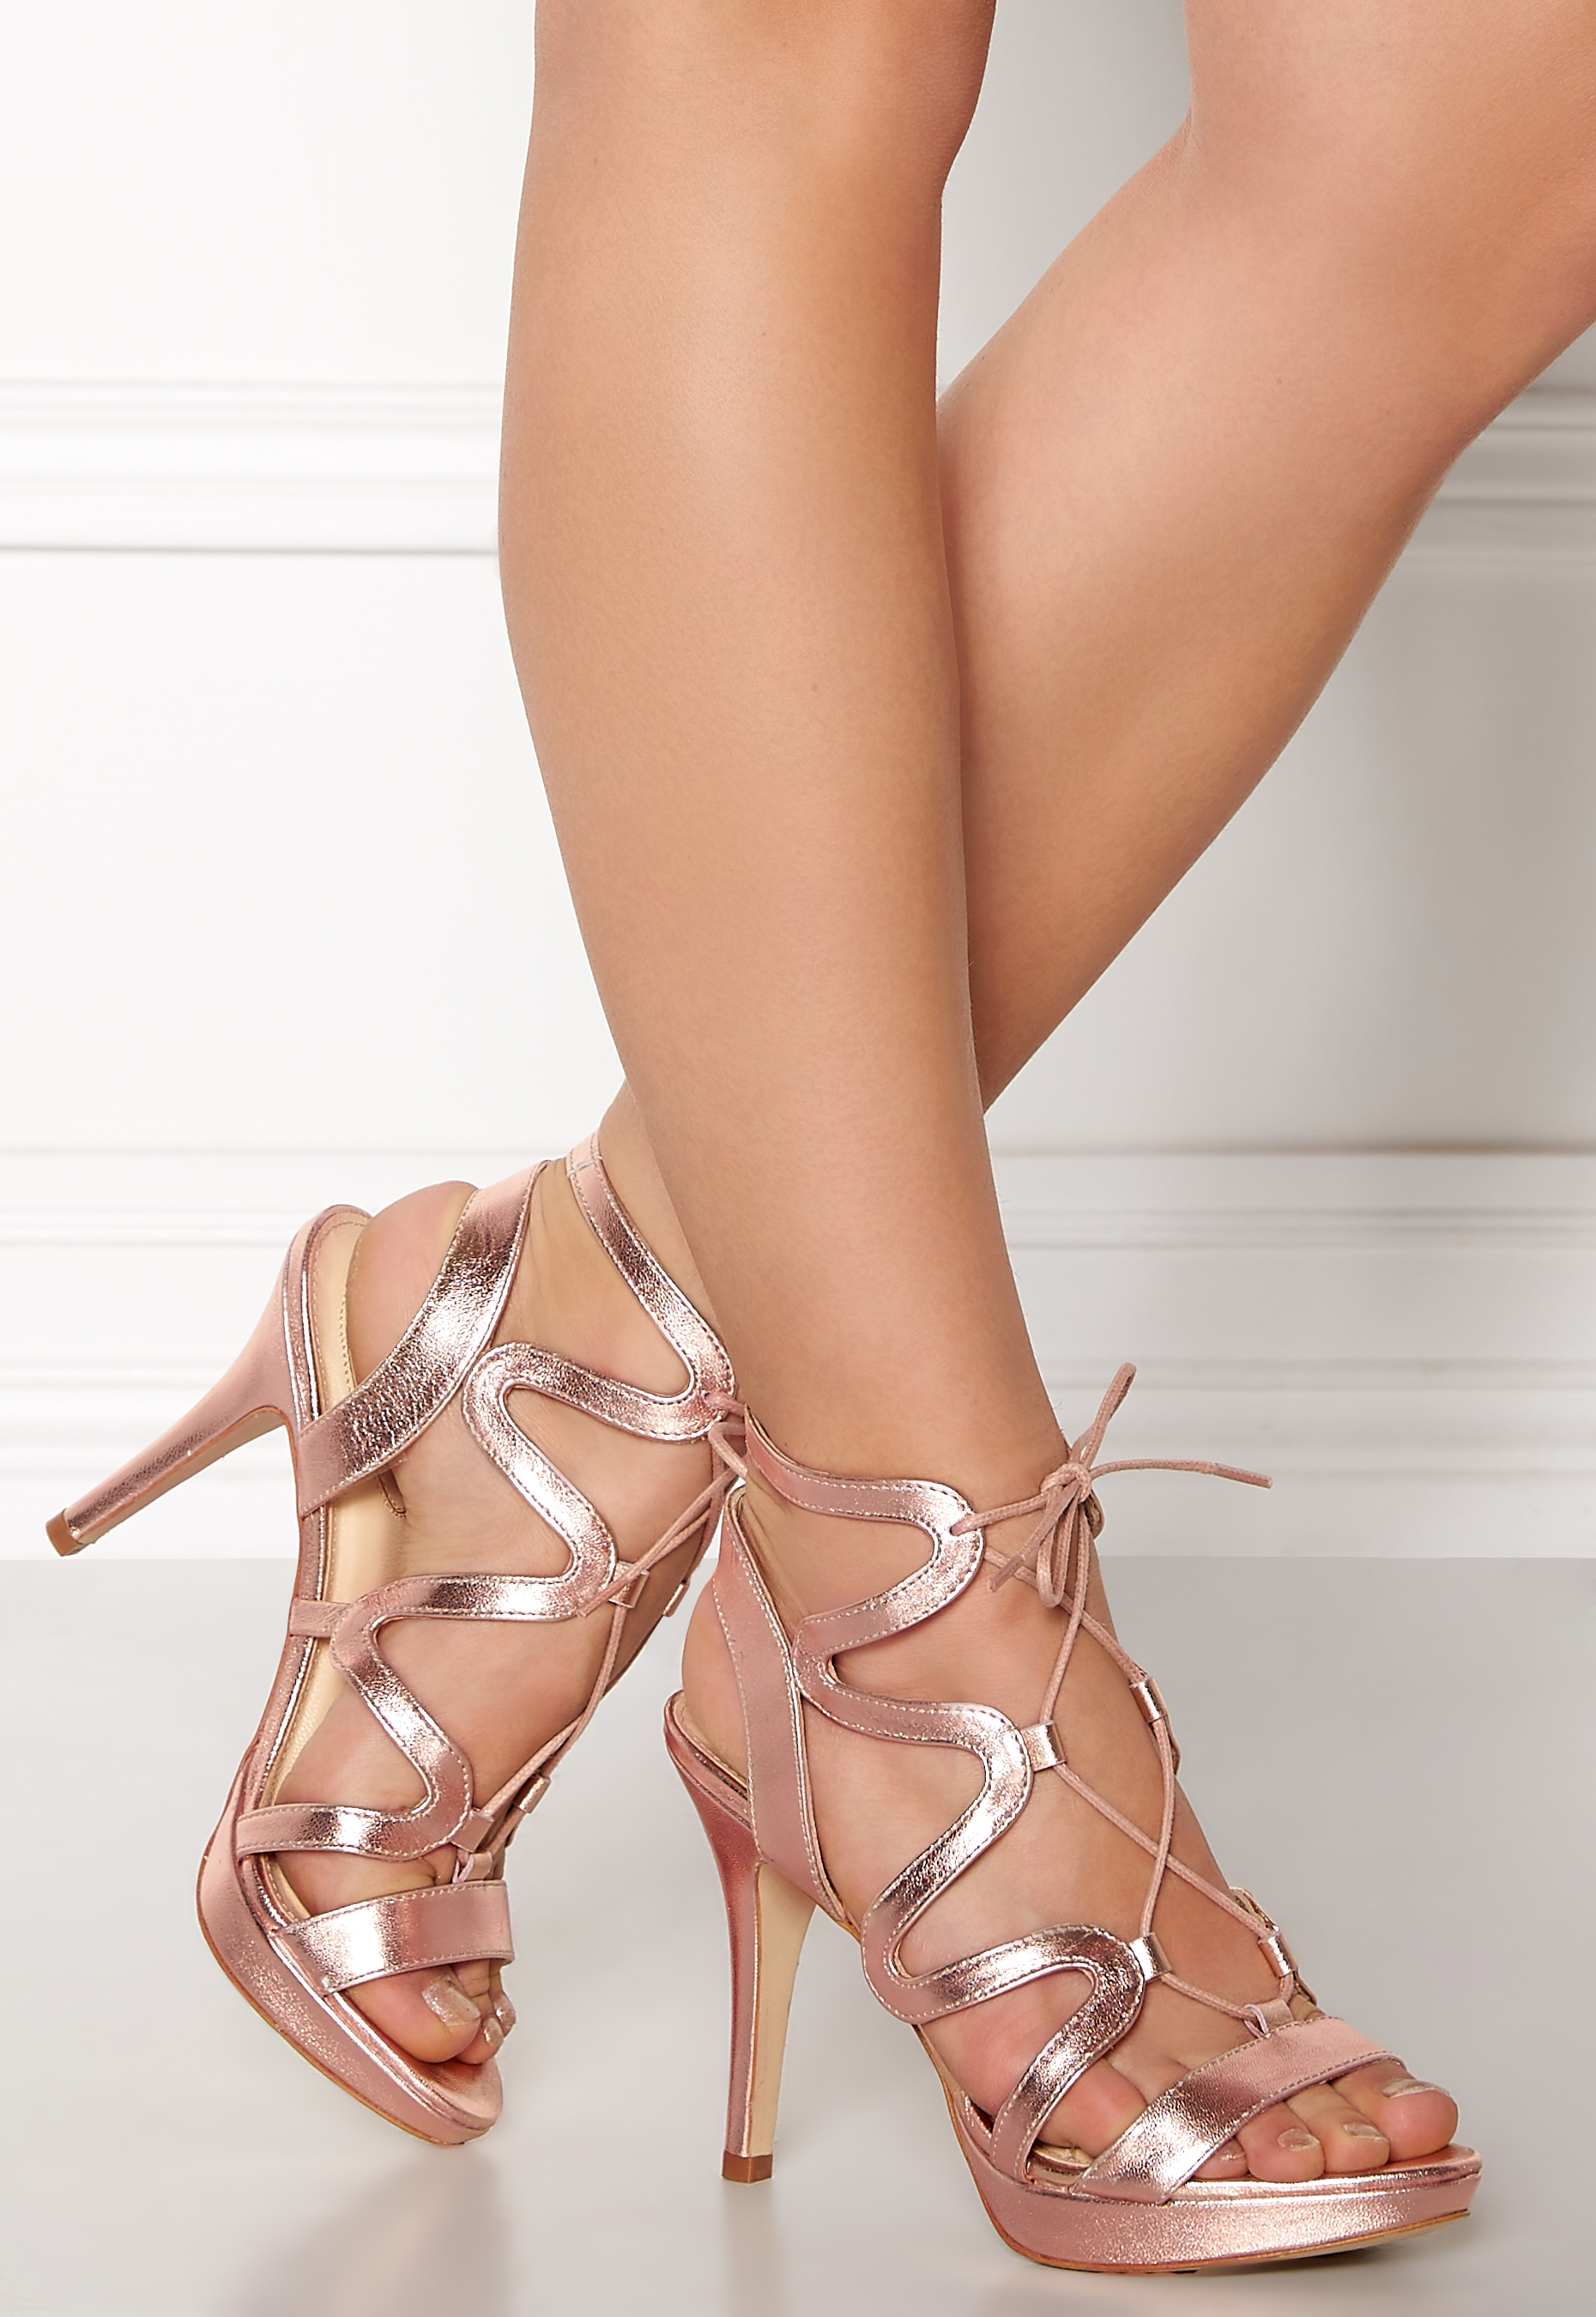 0a741a87833 SARGOSSA Chic Nappa Leather Heels Rose Gold - Bubbleroom